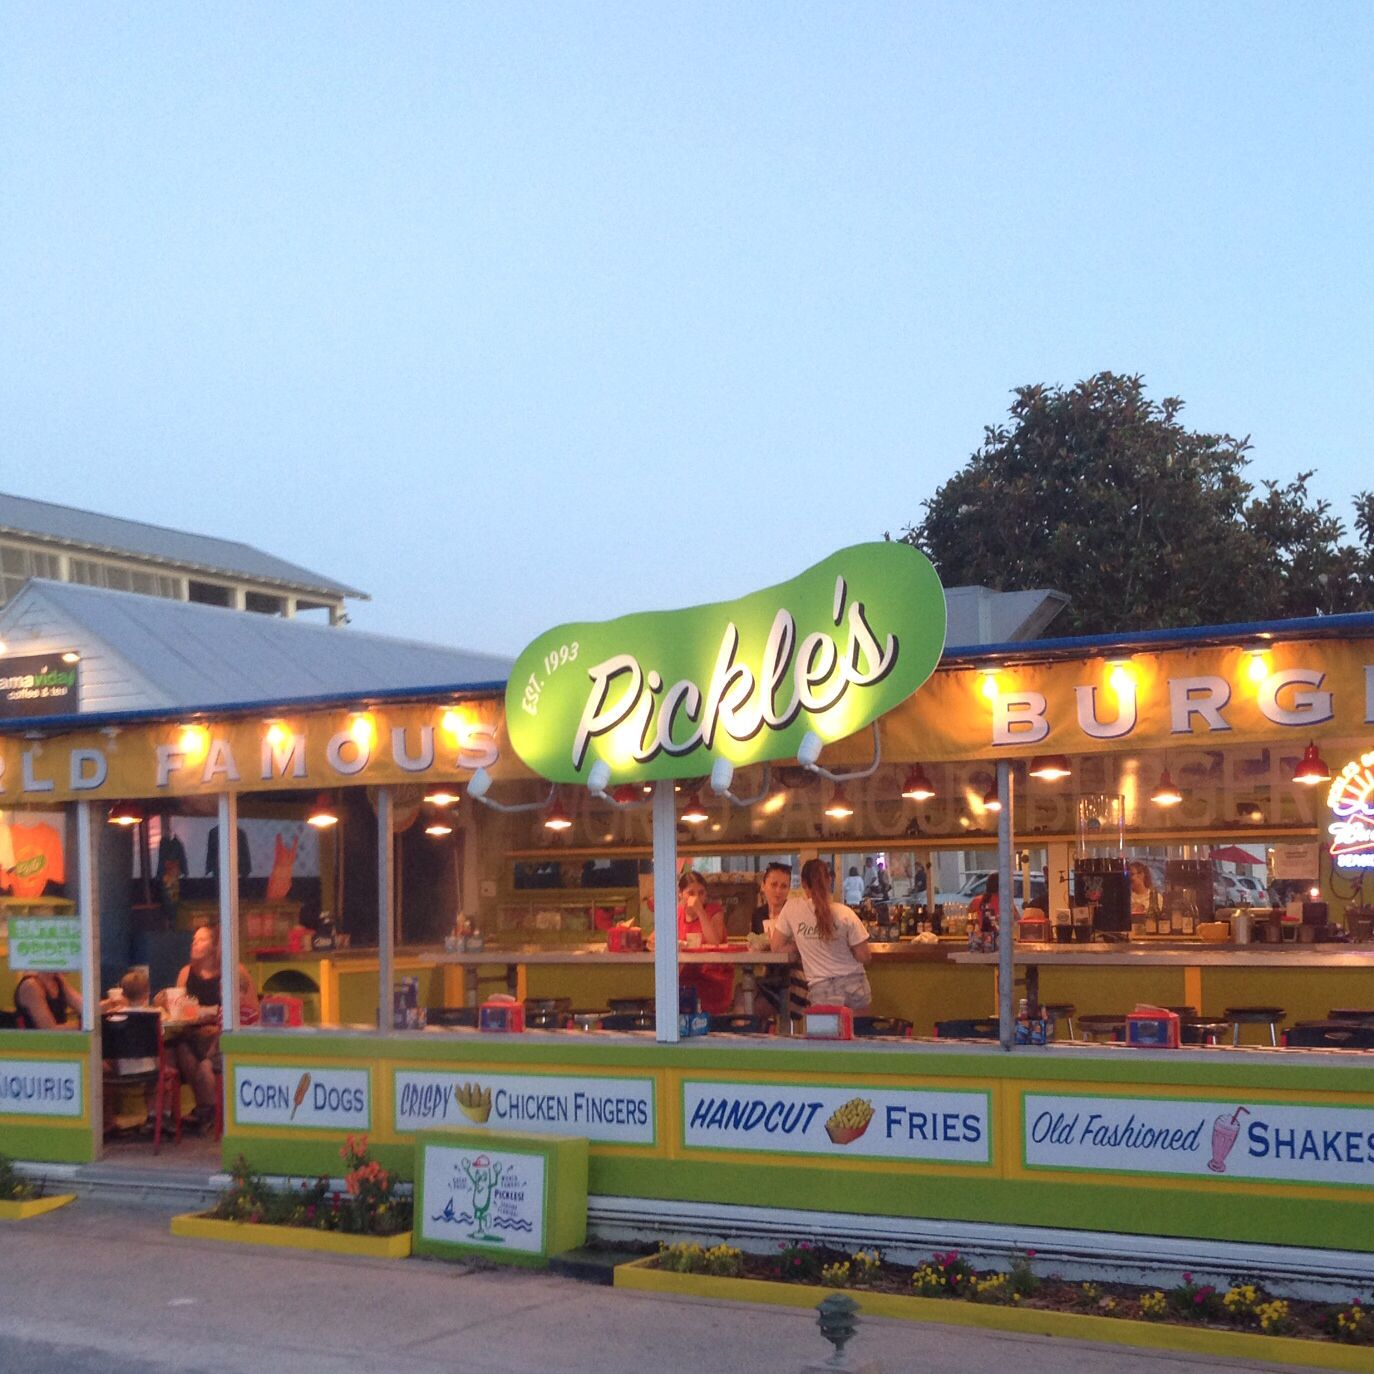 Pickle S A Delicious Little Restaurant Nestled In The Small But Busy Southern Beach Town Bearing Name Of Seaside Florida